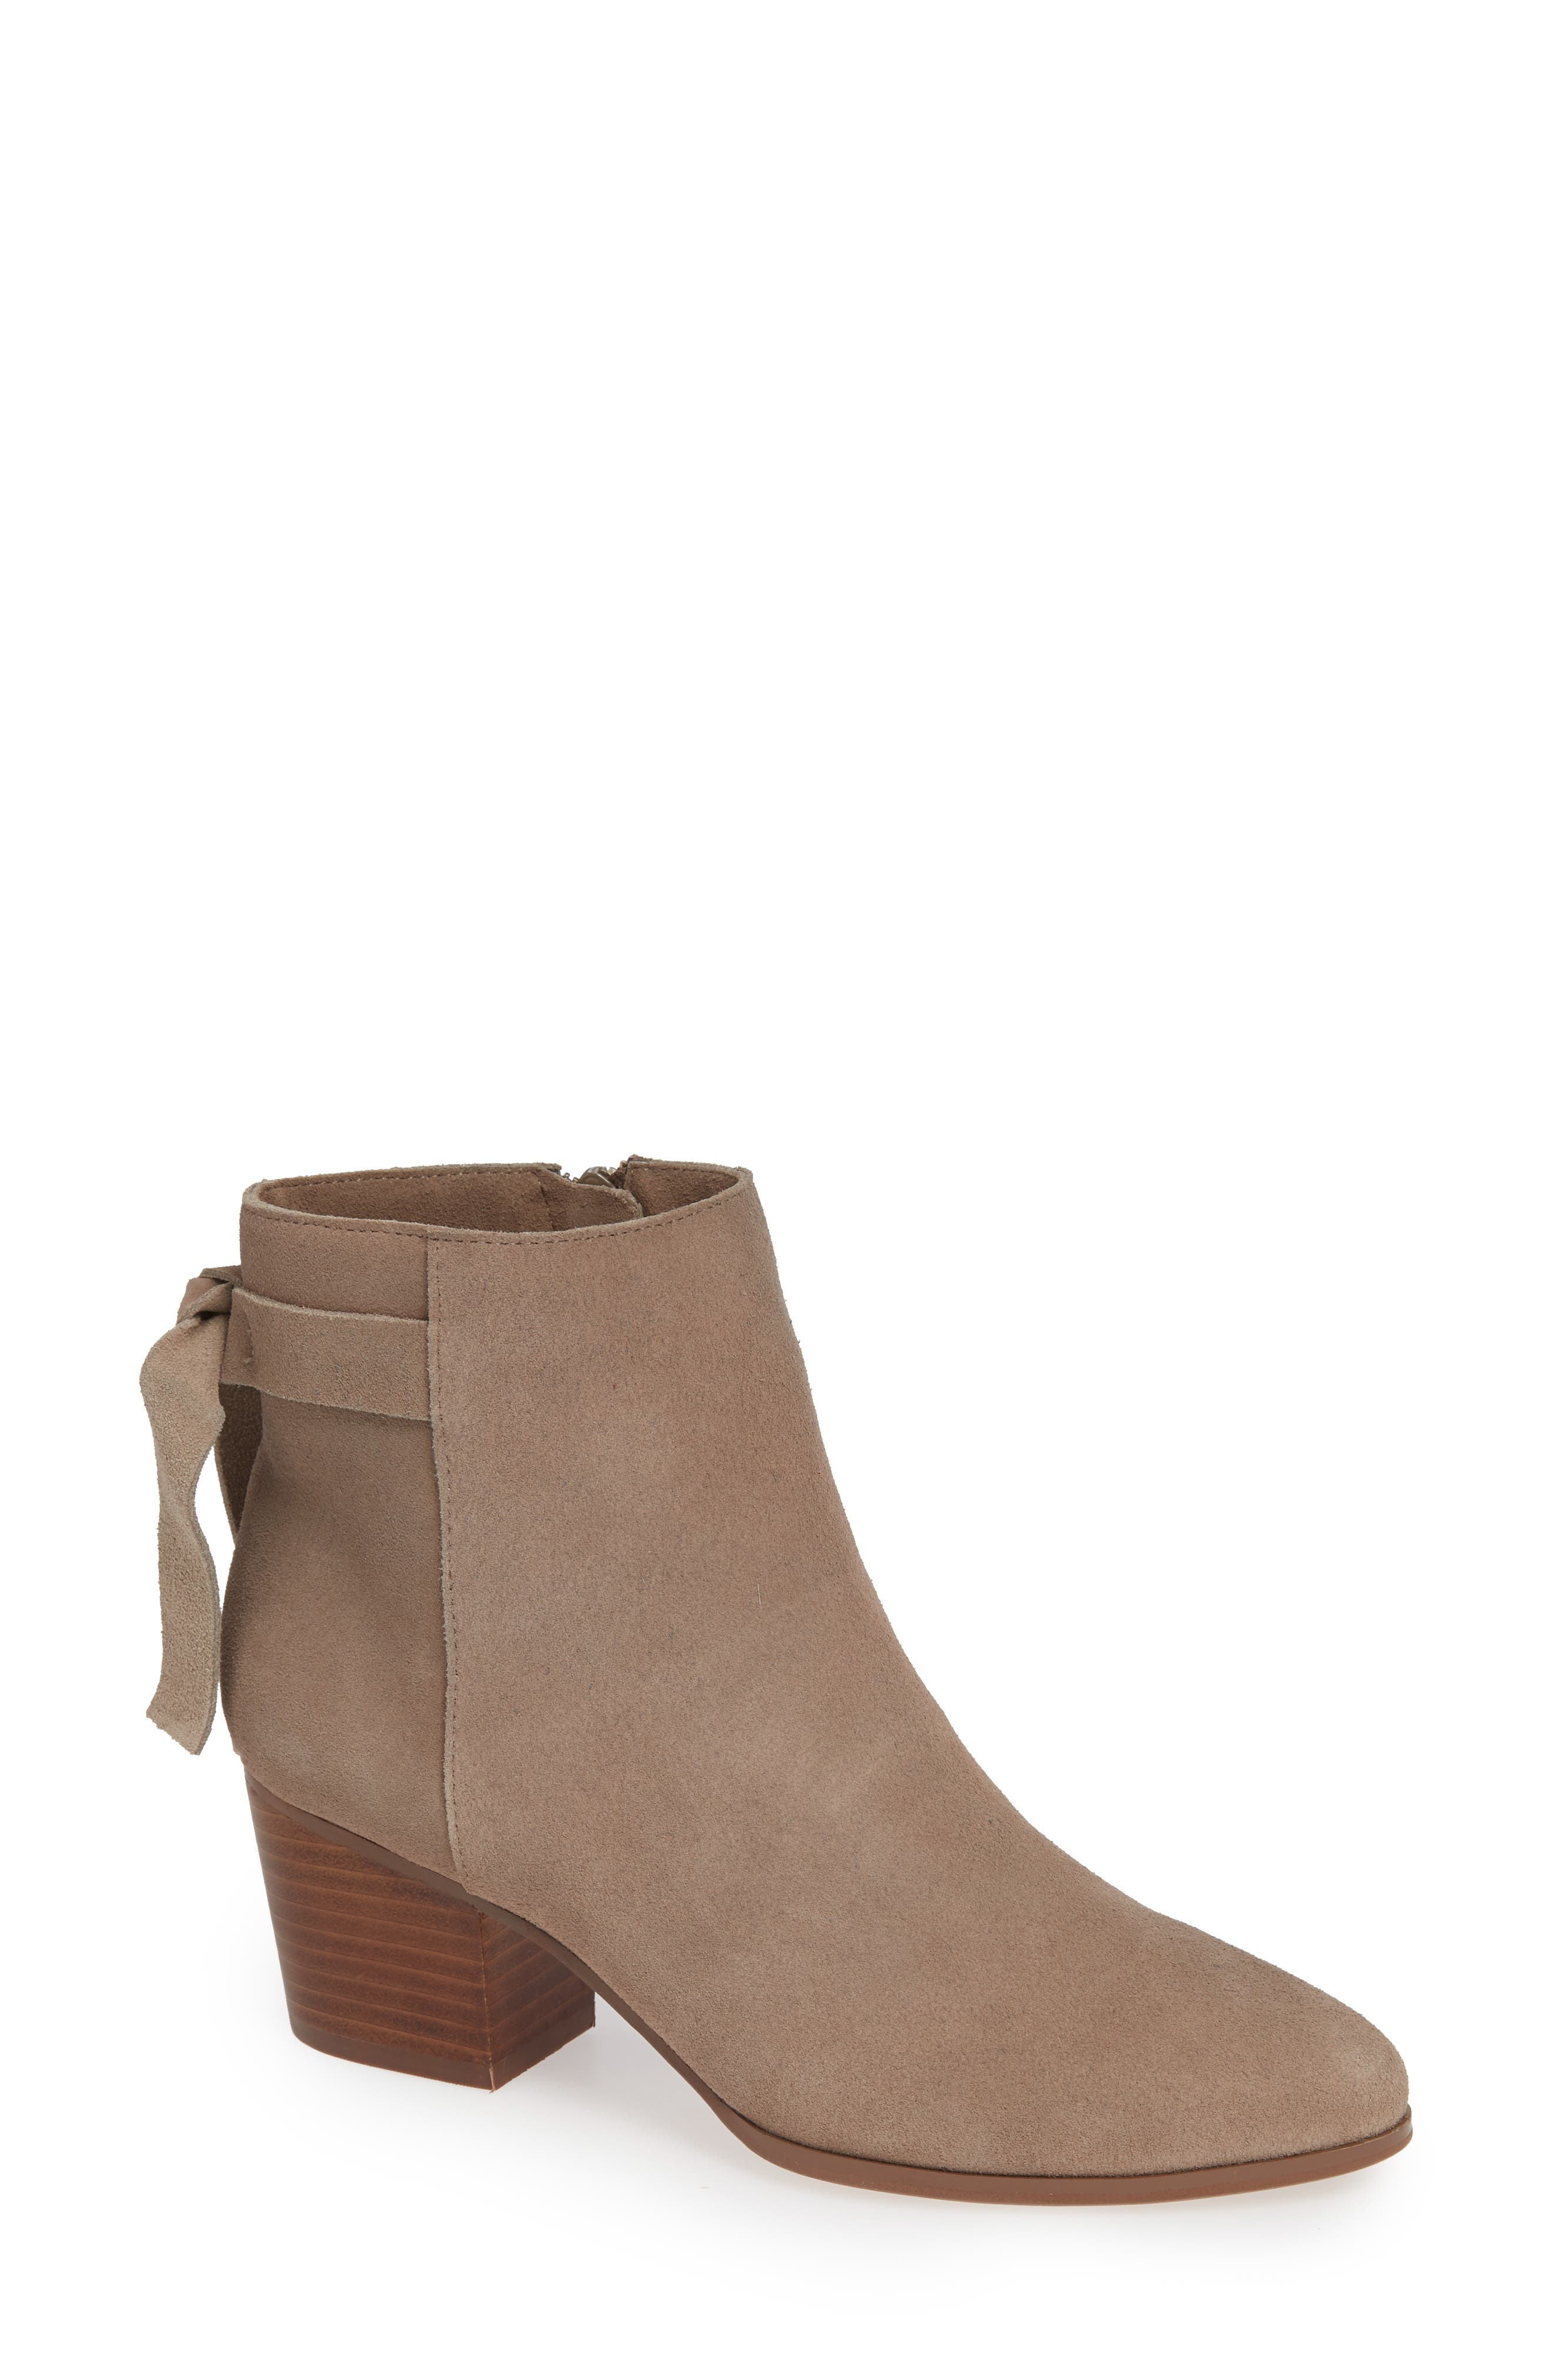 Rhilynn Bootie, Main, color, FALL TAUPE SUEDE